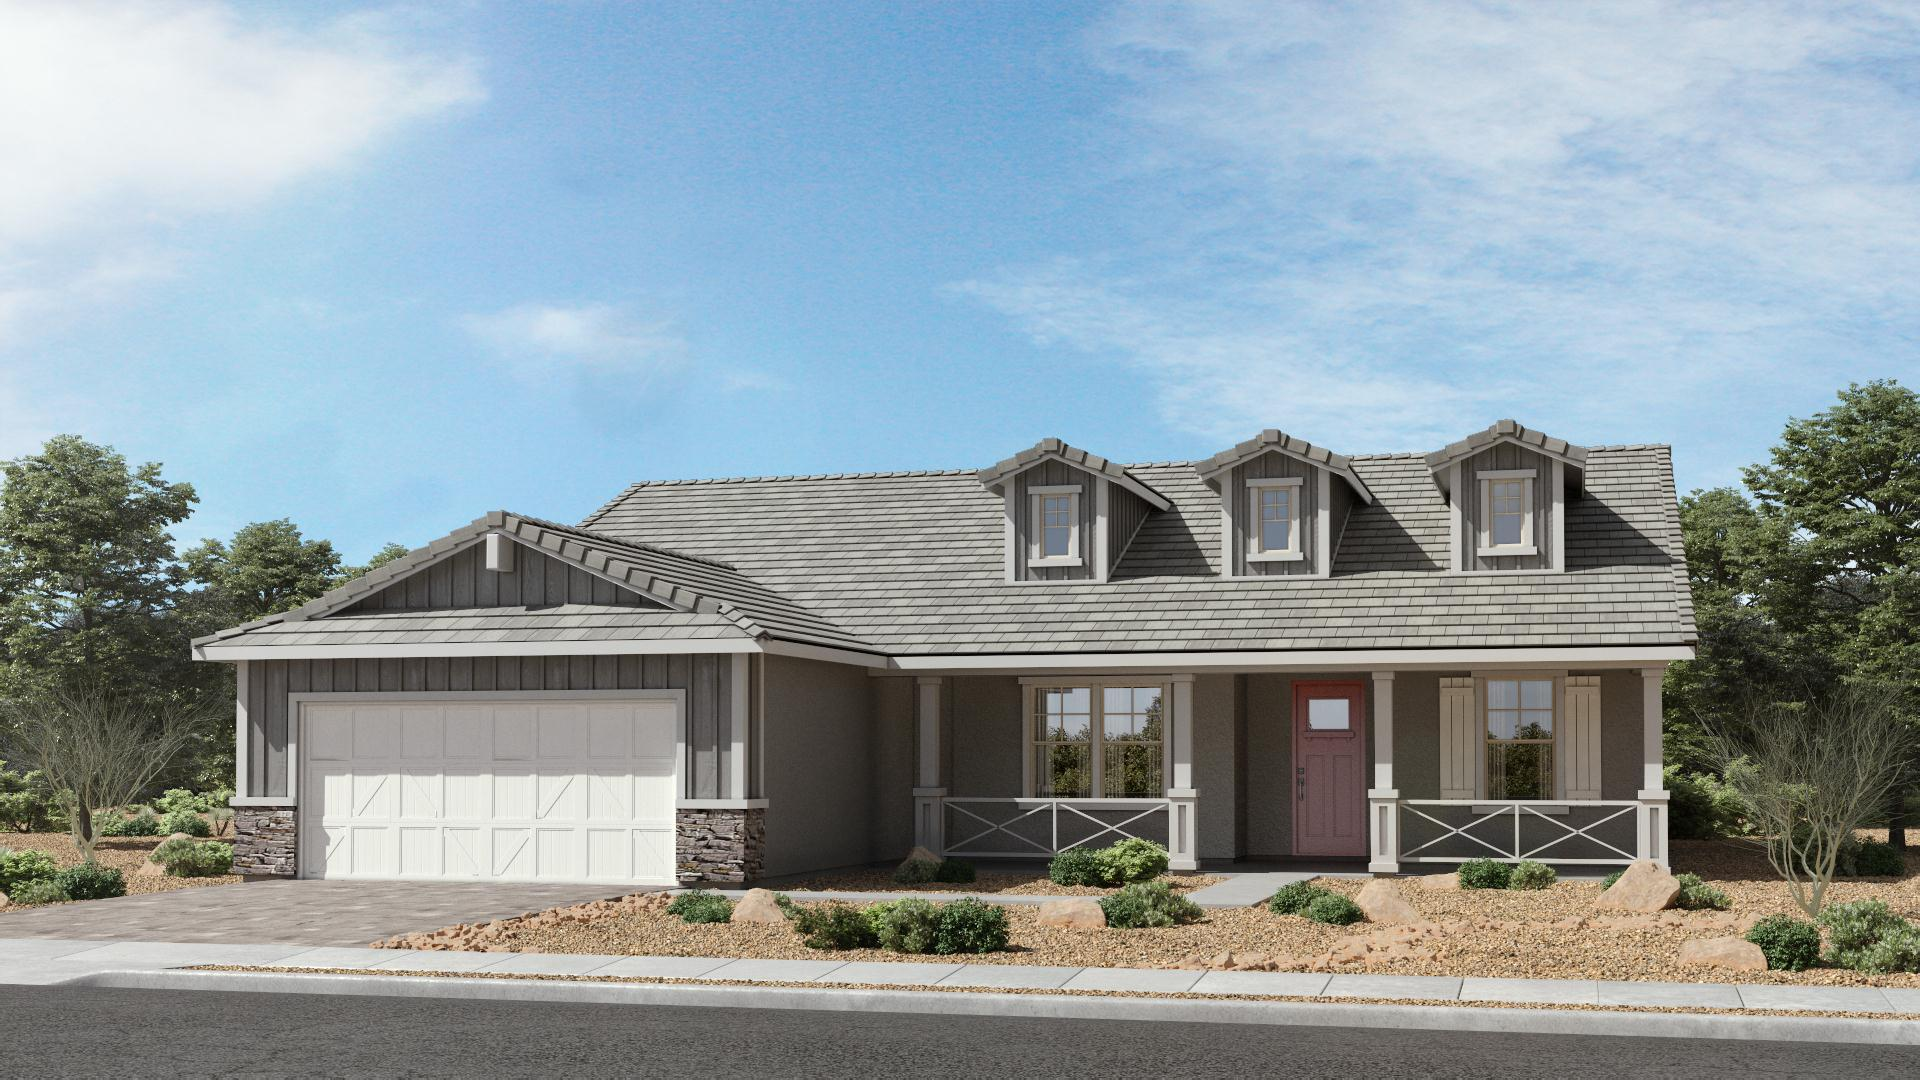 Exterior featured in The Sapphire | Plan 54.2060 By Brown Homes AZ in Prescott, AZ